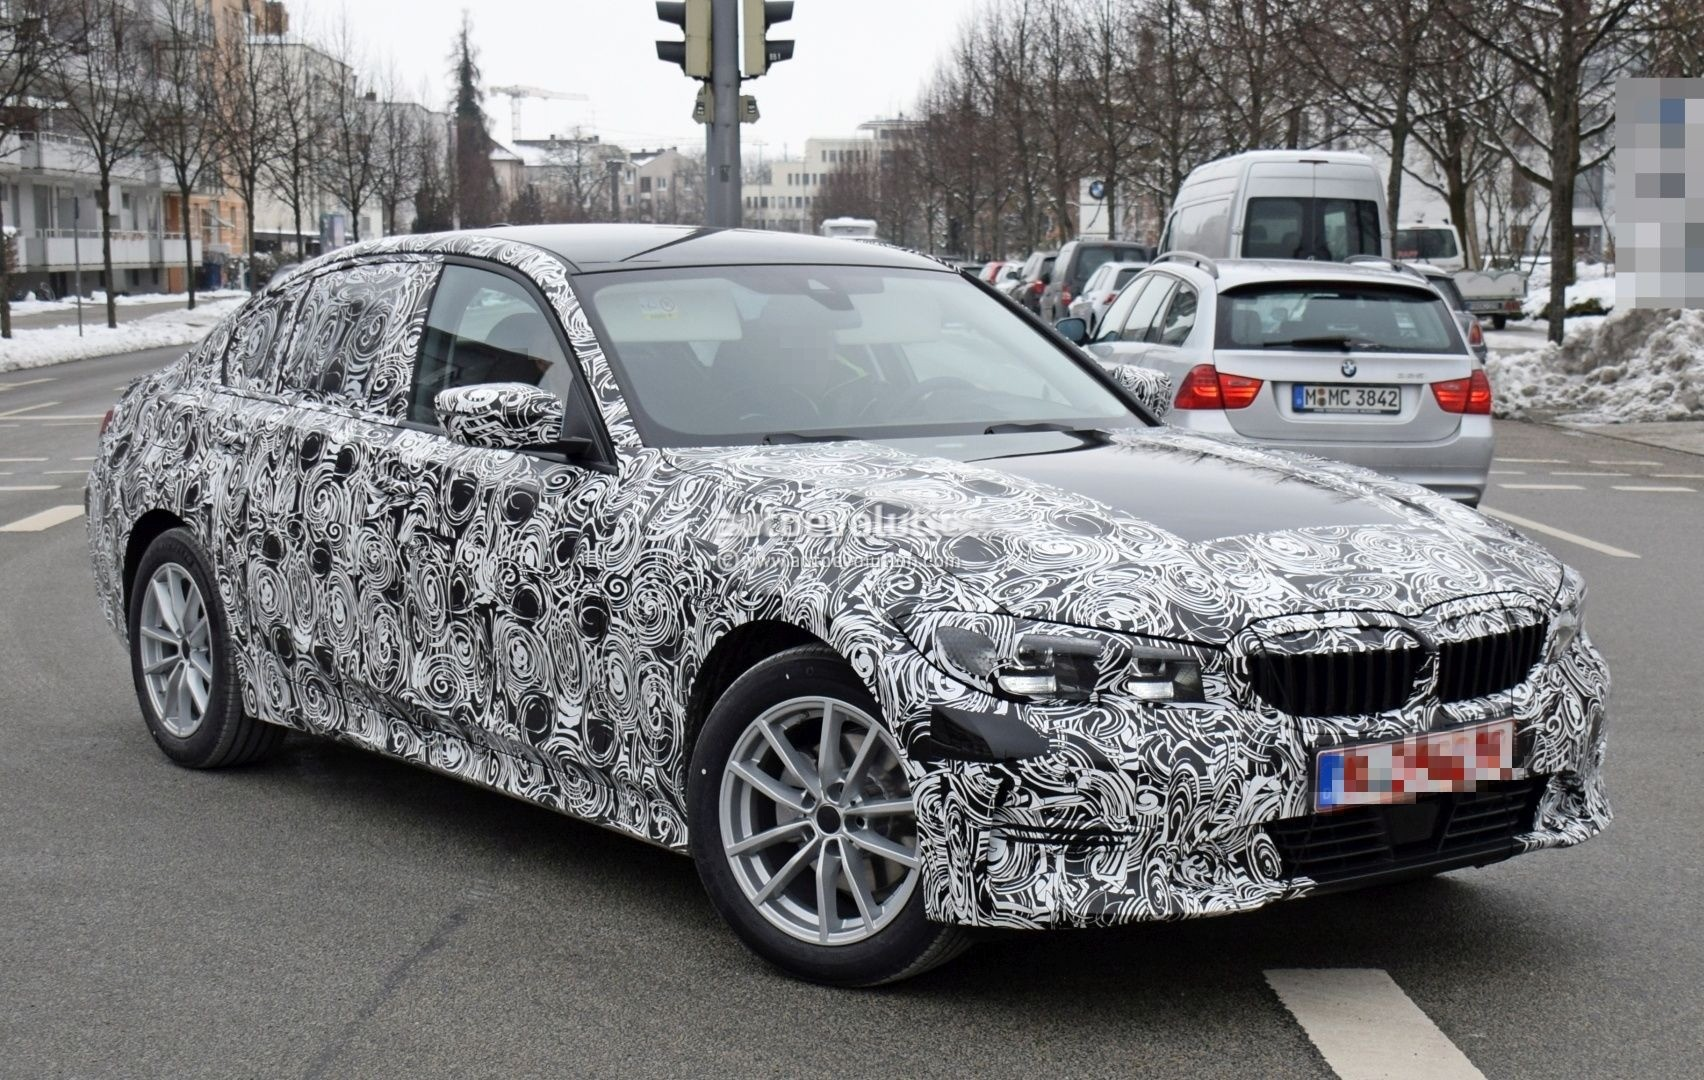 2019 bmw 3 series prototype shows production design looks like smaller 5 series autoevolution. Black Bedroom Furniture Sets. Home Design Ideas